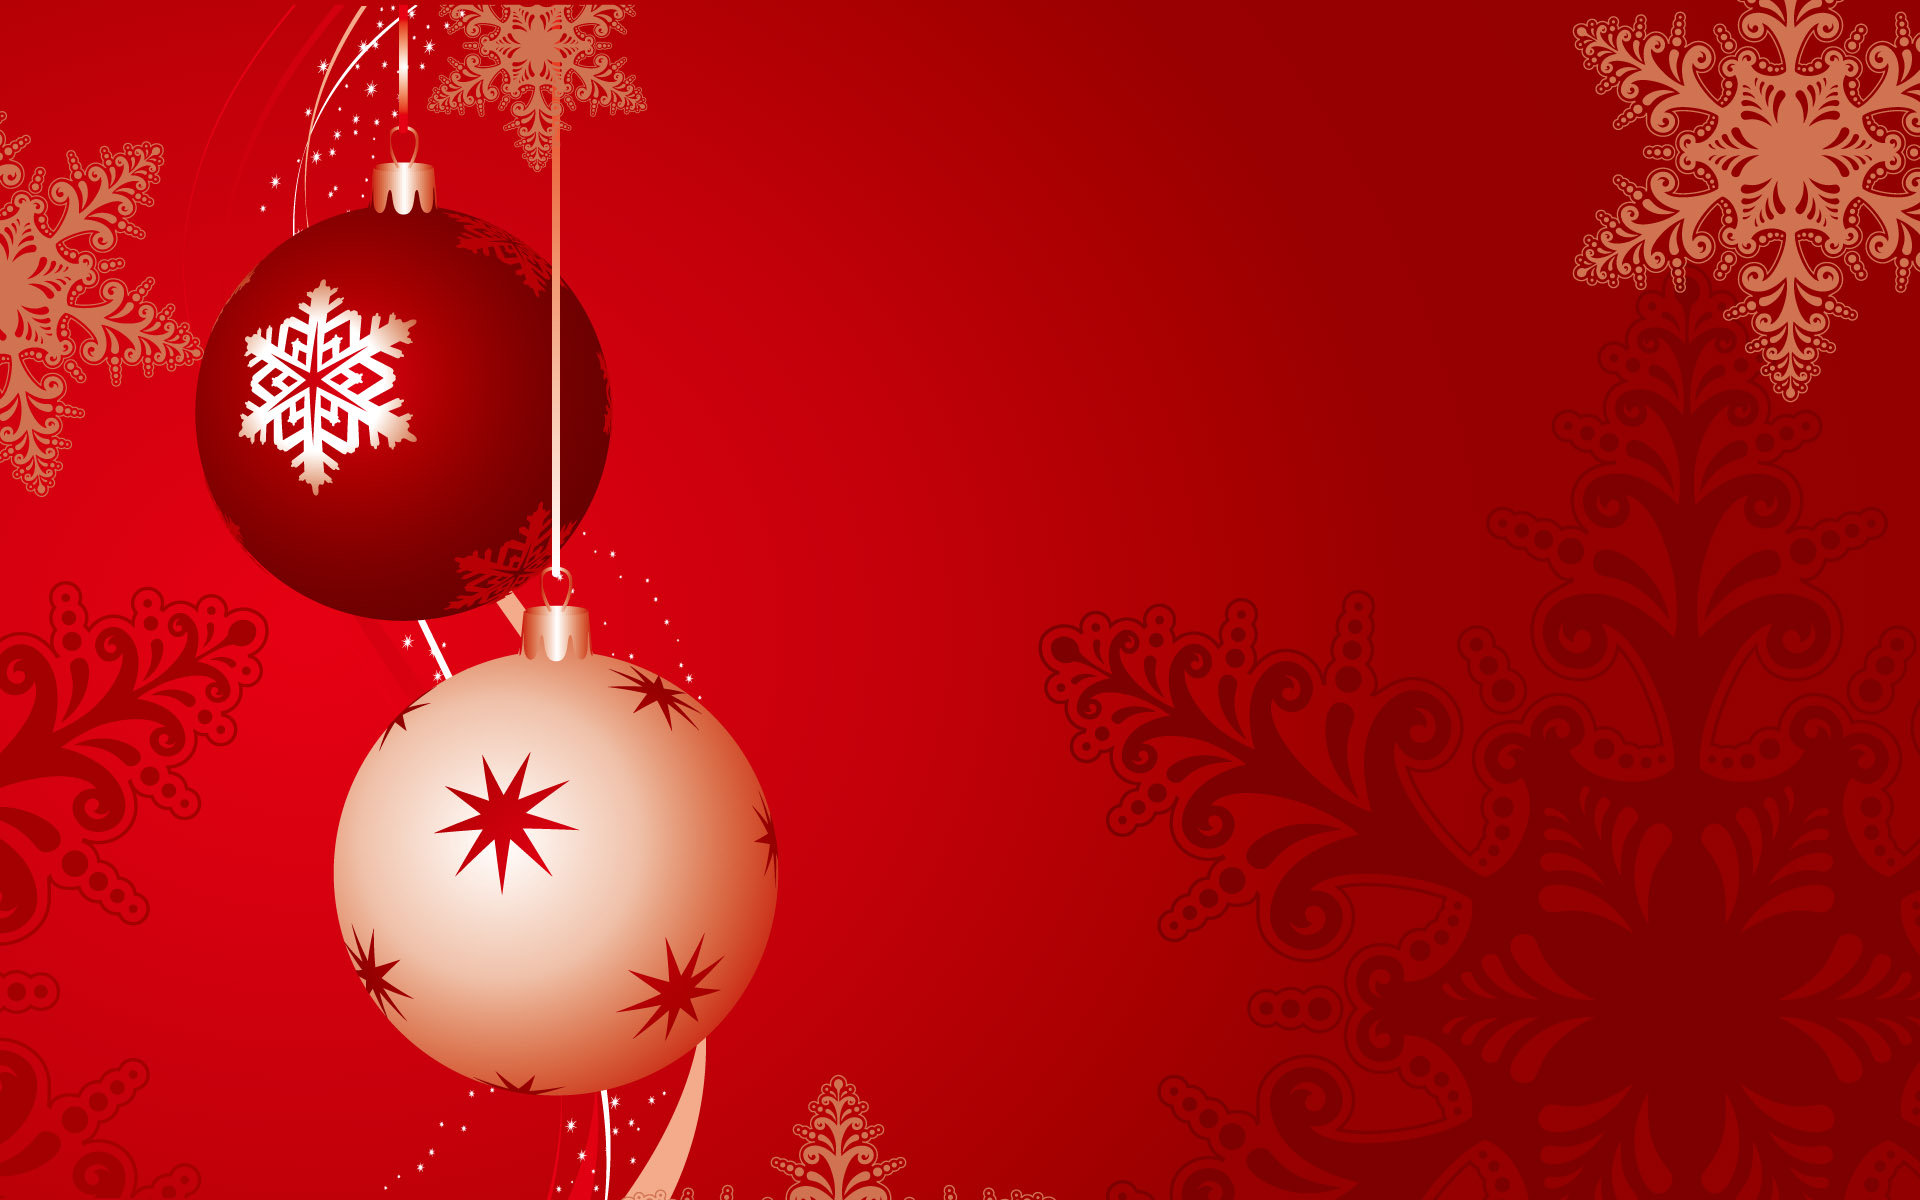 Christmas Desktop Wallpaper 1080p Wallpaper